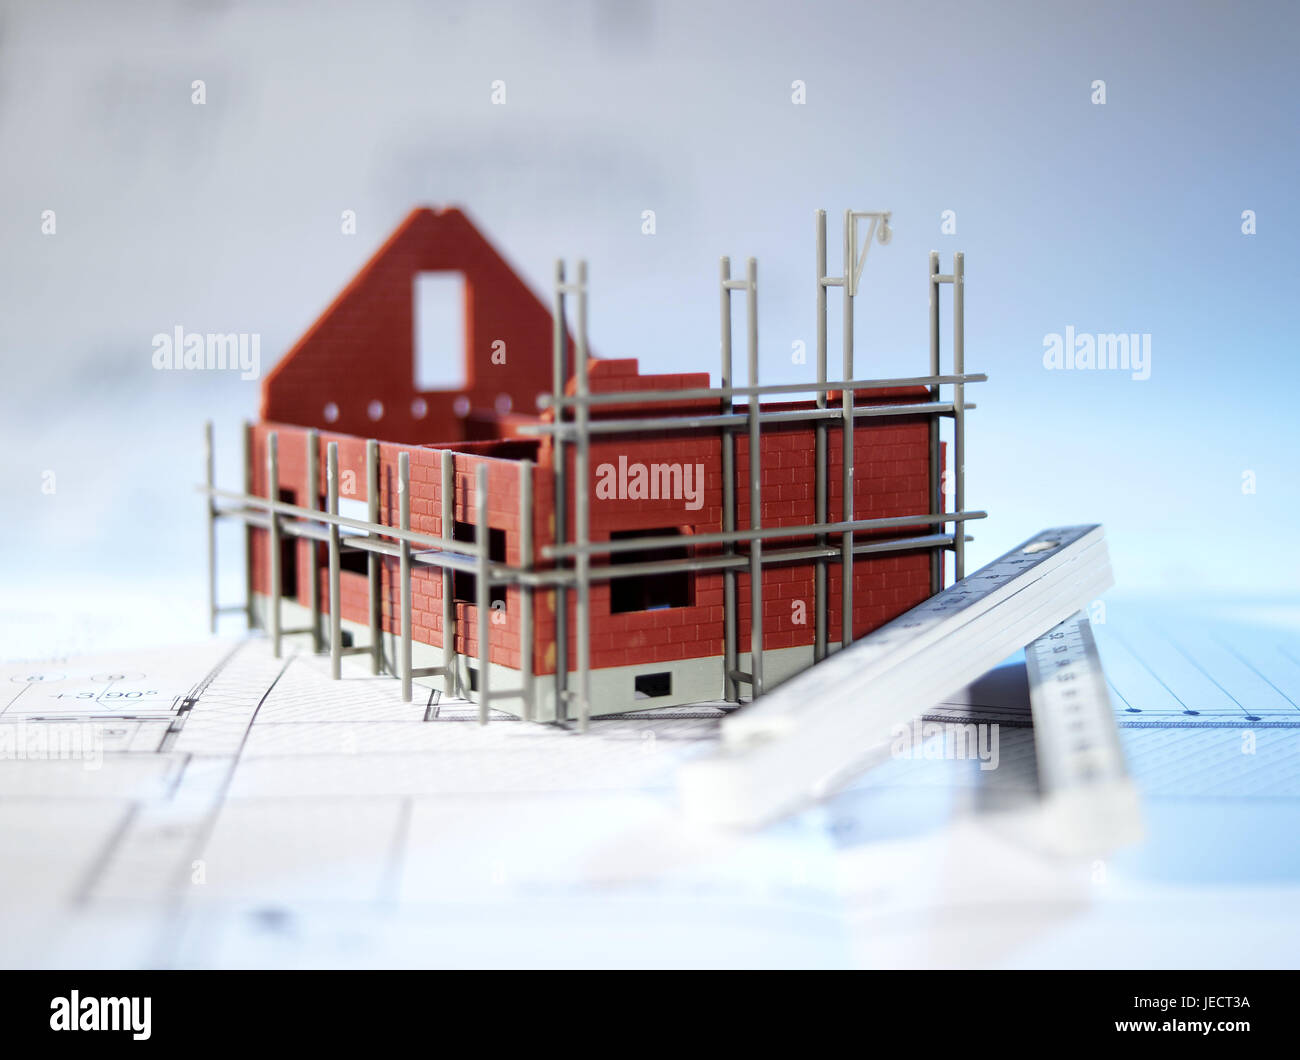 House model single family dwelling shell architects plan yard house model single family dwelling shell architects plan yard stick icon building of a house real estate possession property own home house ccuart Gallery